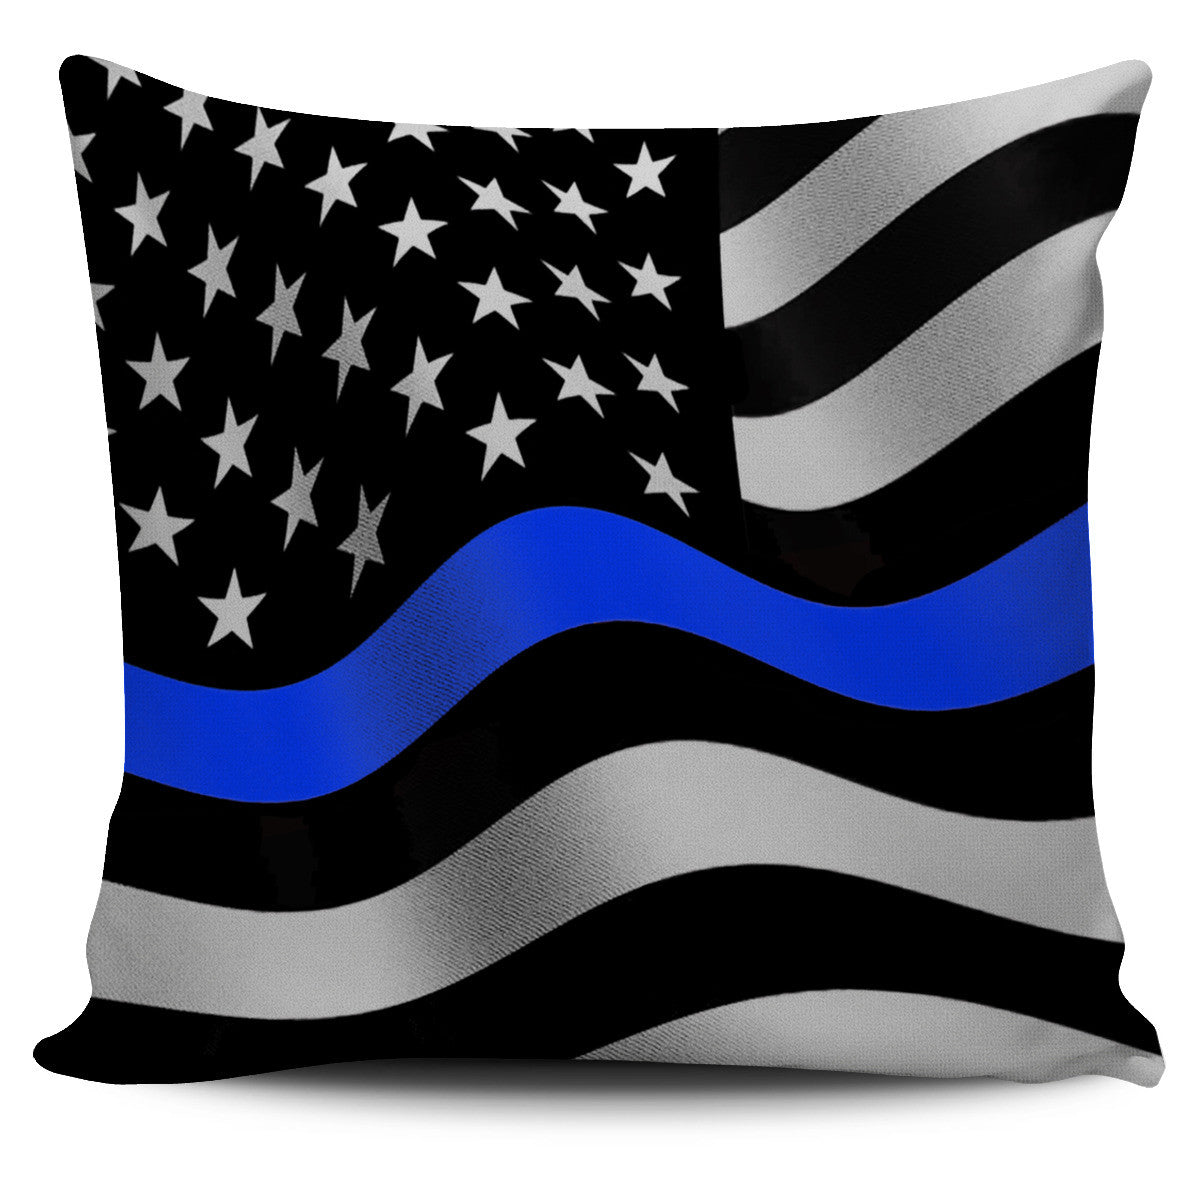 Thin Blue Line Pillow Covers